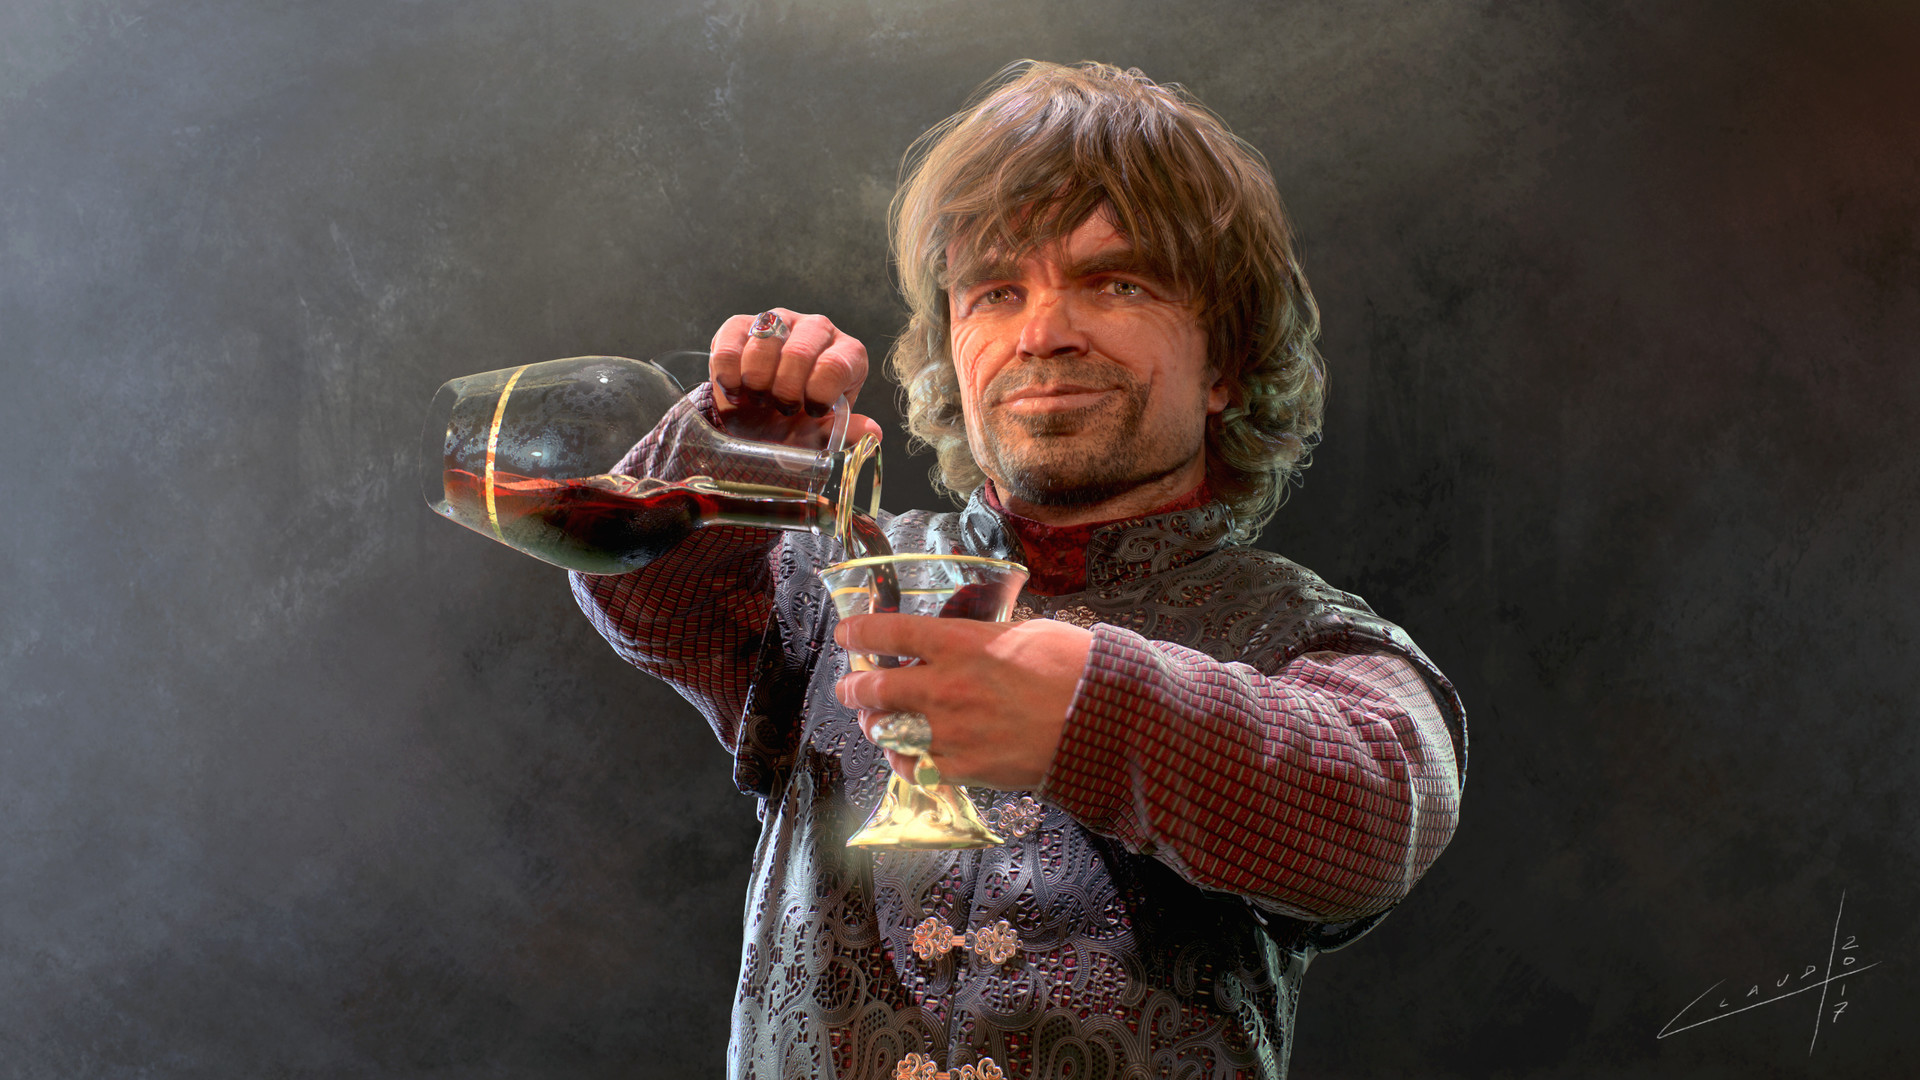 claudio-clemente-claudioclemente-tyrion-